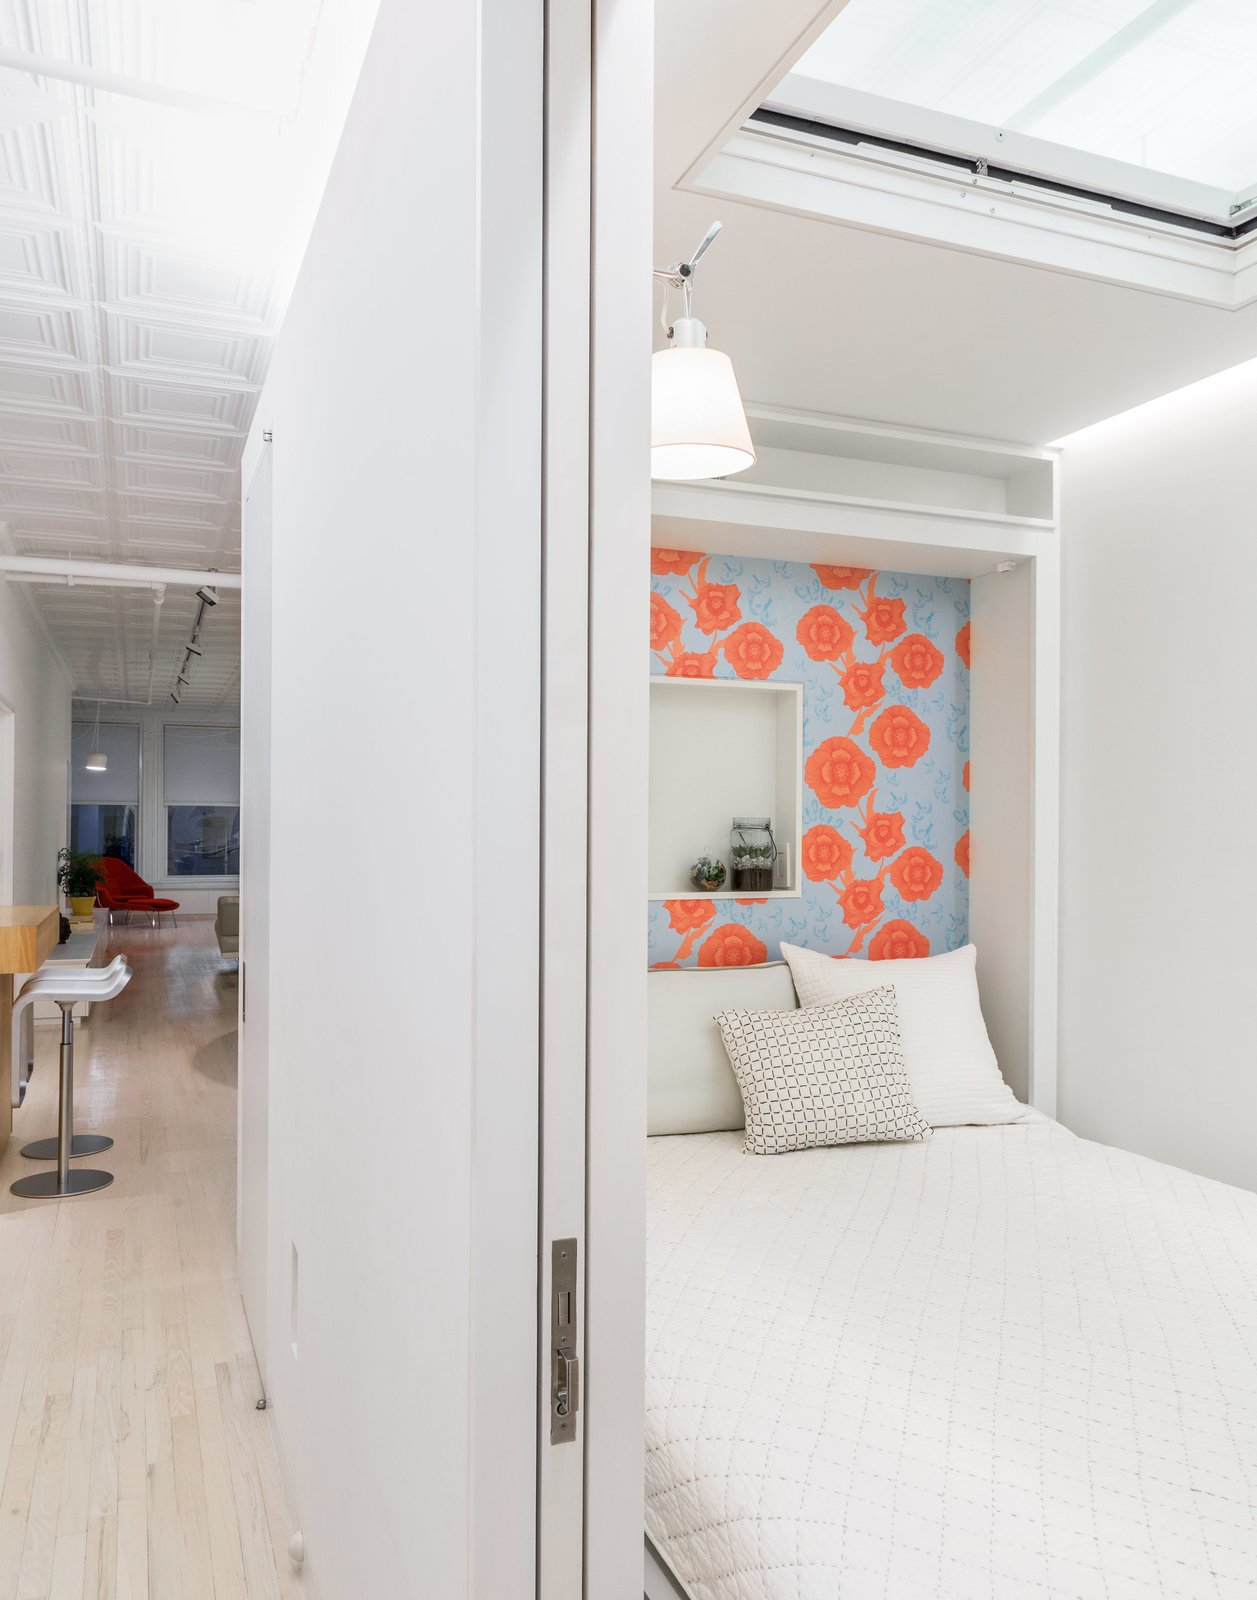 """Across from it, a Murphy bed by Resource Furniture—lined with Camilla Meijer wallpaper and featuring a customized niche—allows the space to function as a guest room. An electric Velux skylight frames views of the original tin plates above. The architects chose to leave space between the top of the structure and the ceiling to maintain the rectangular proportions of the loft. """"It reads right away,"""" Singer says of the volume. """"It's very satisfying."""""""